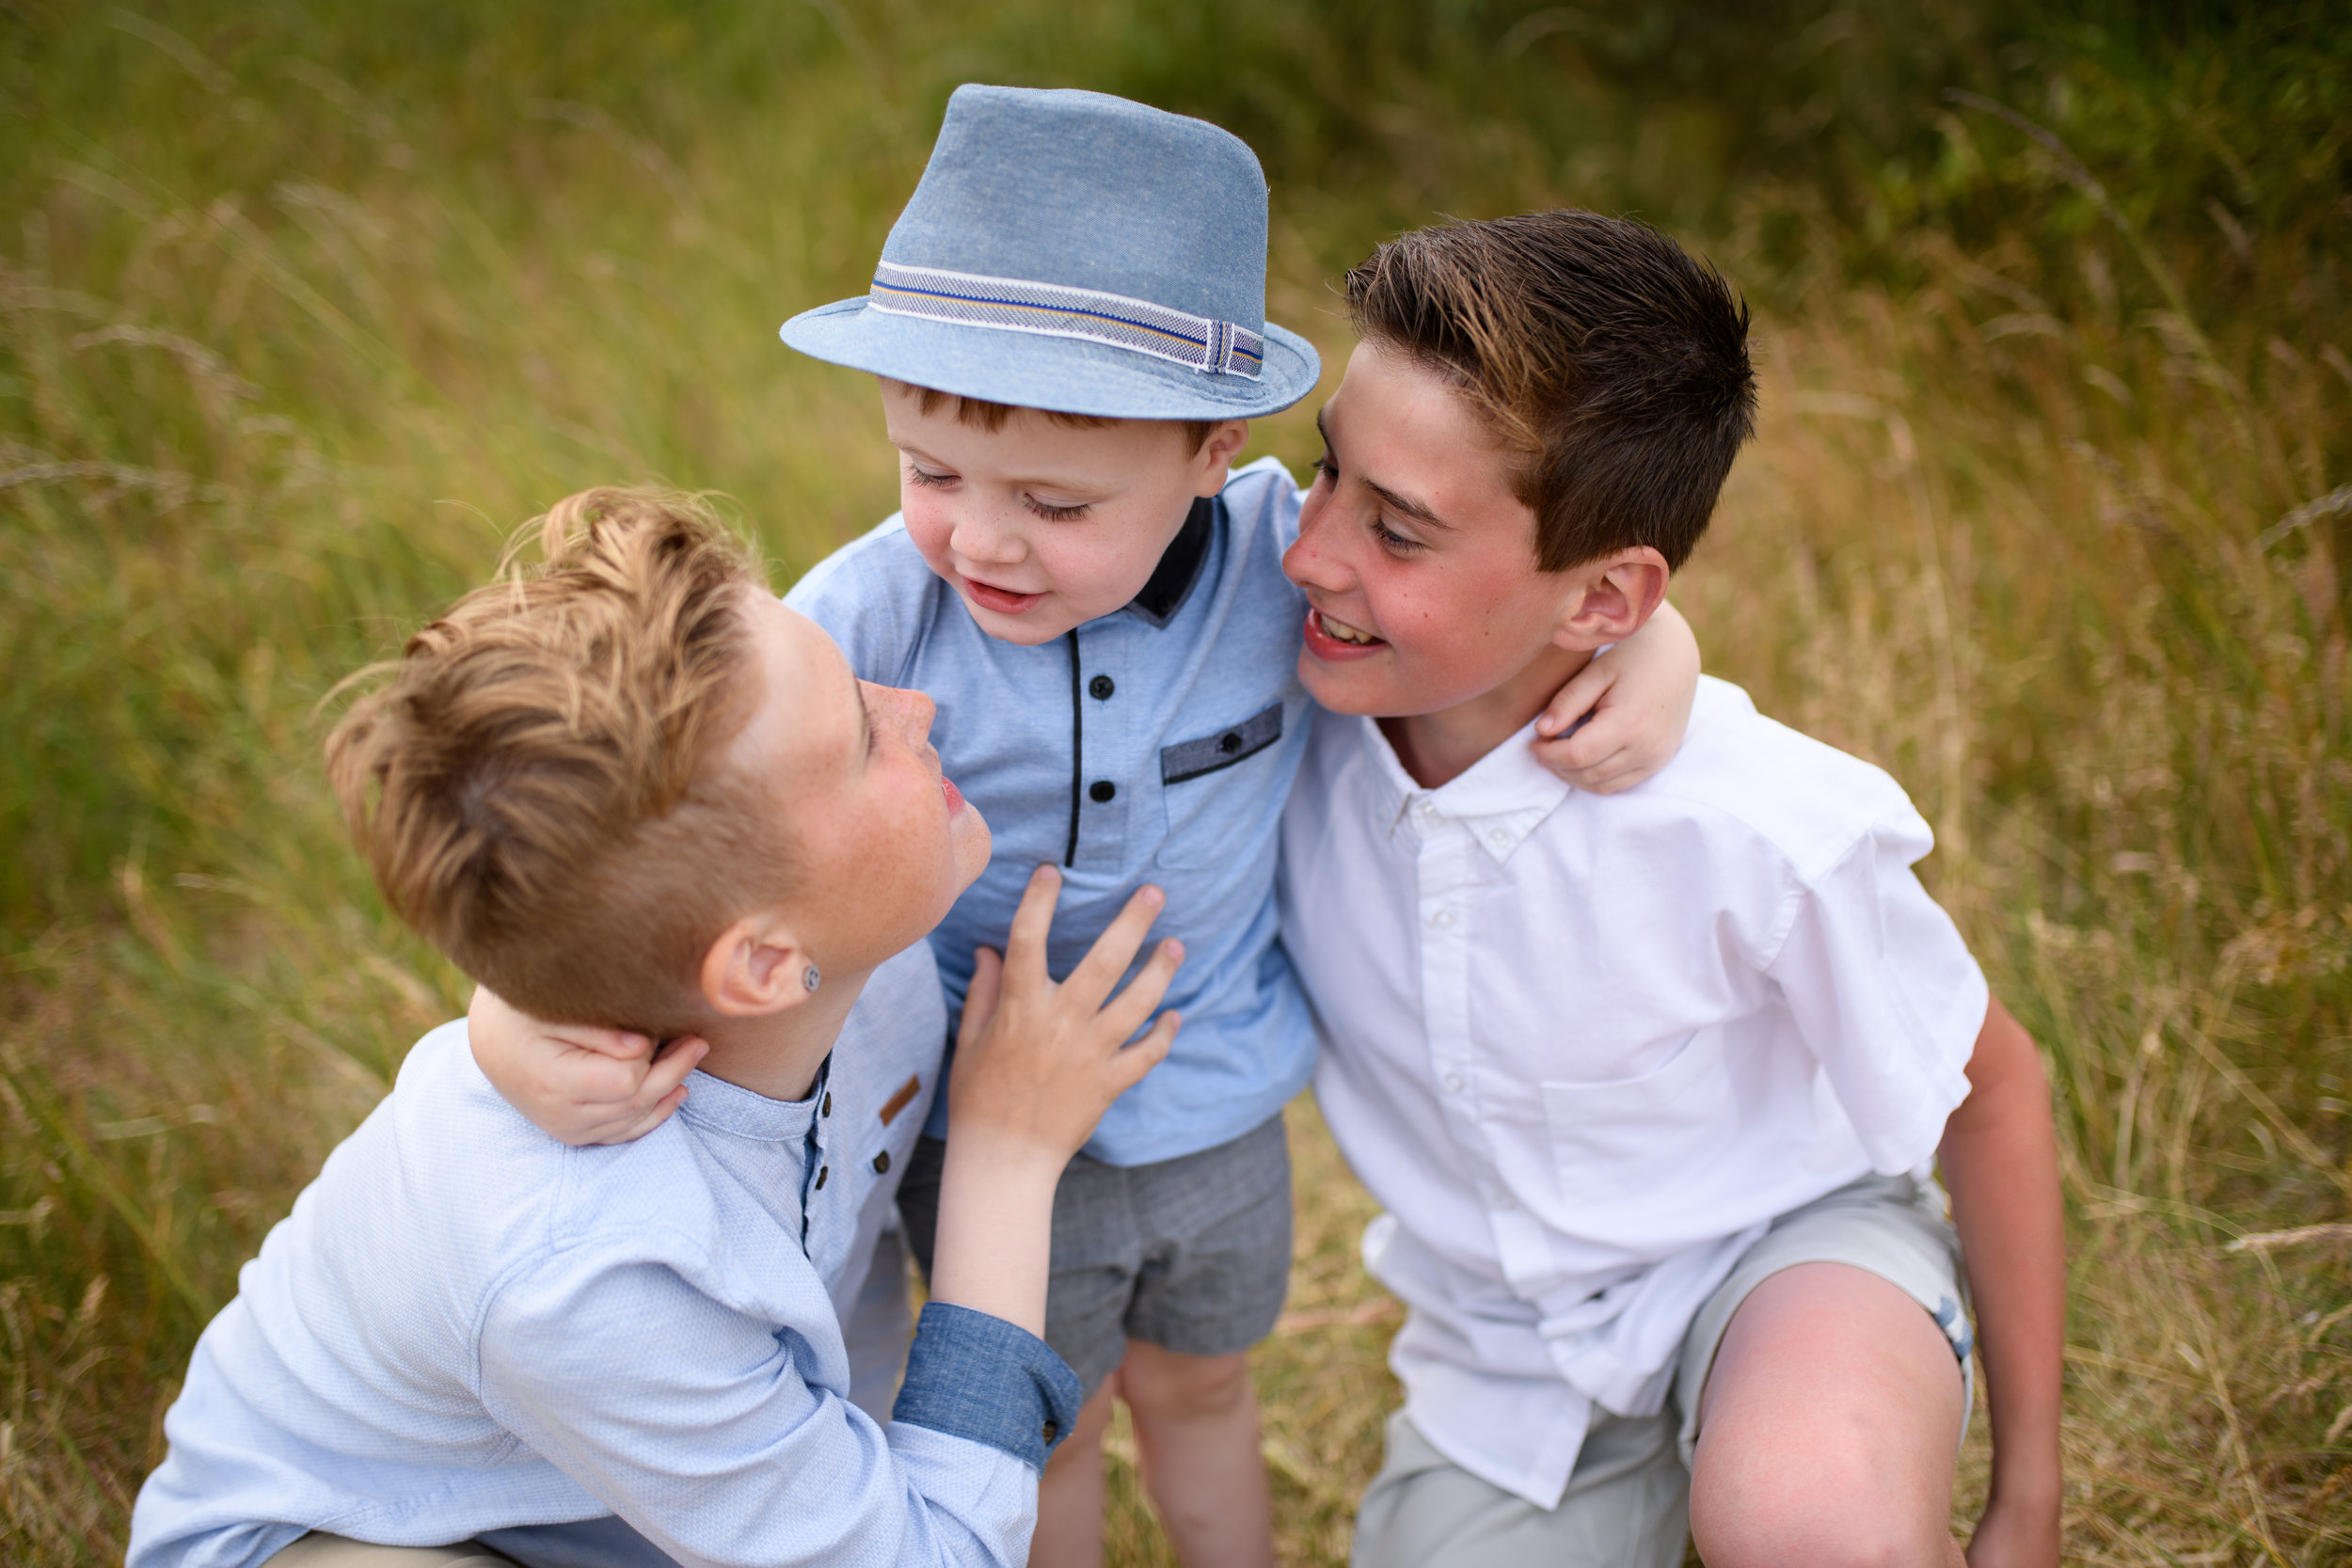 brothers sibling photo shoot Carnoustie dundee.jpeg